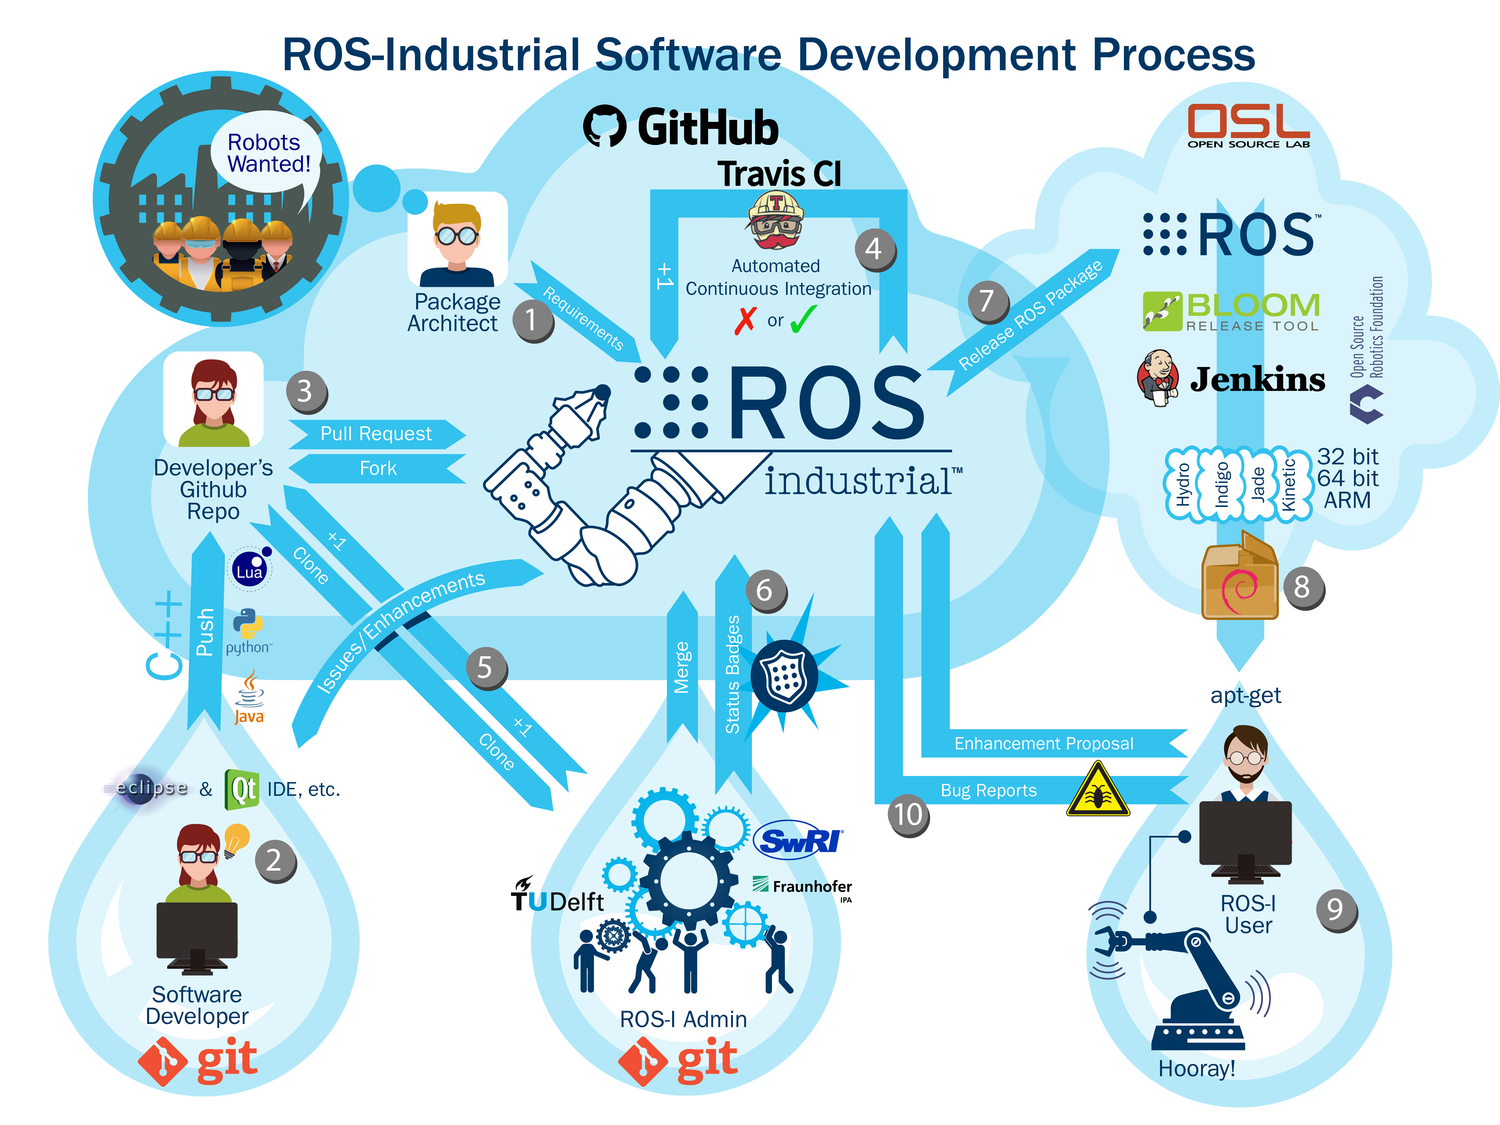 ROS-Industrial Development Process (click for full size version)